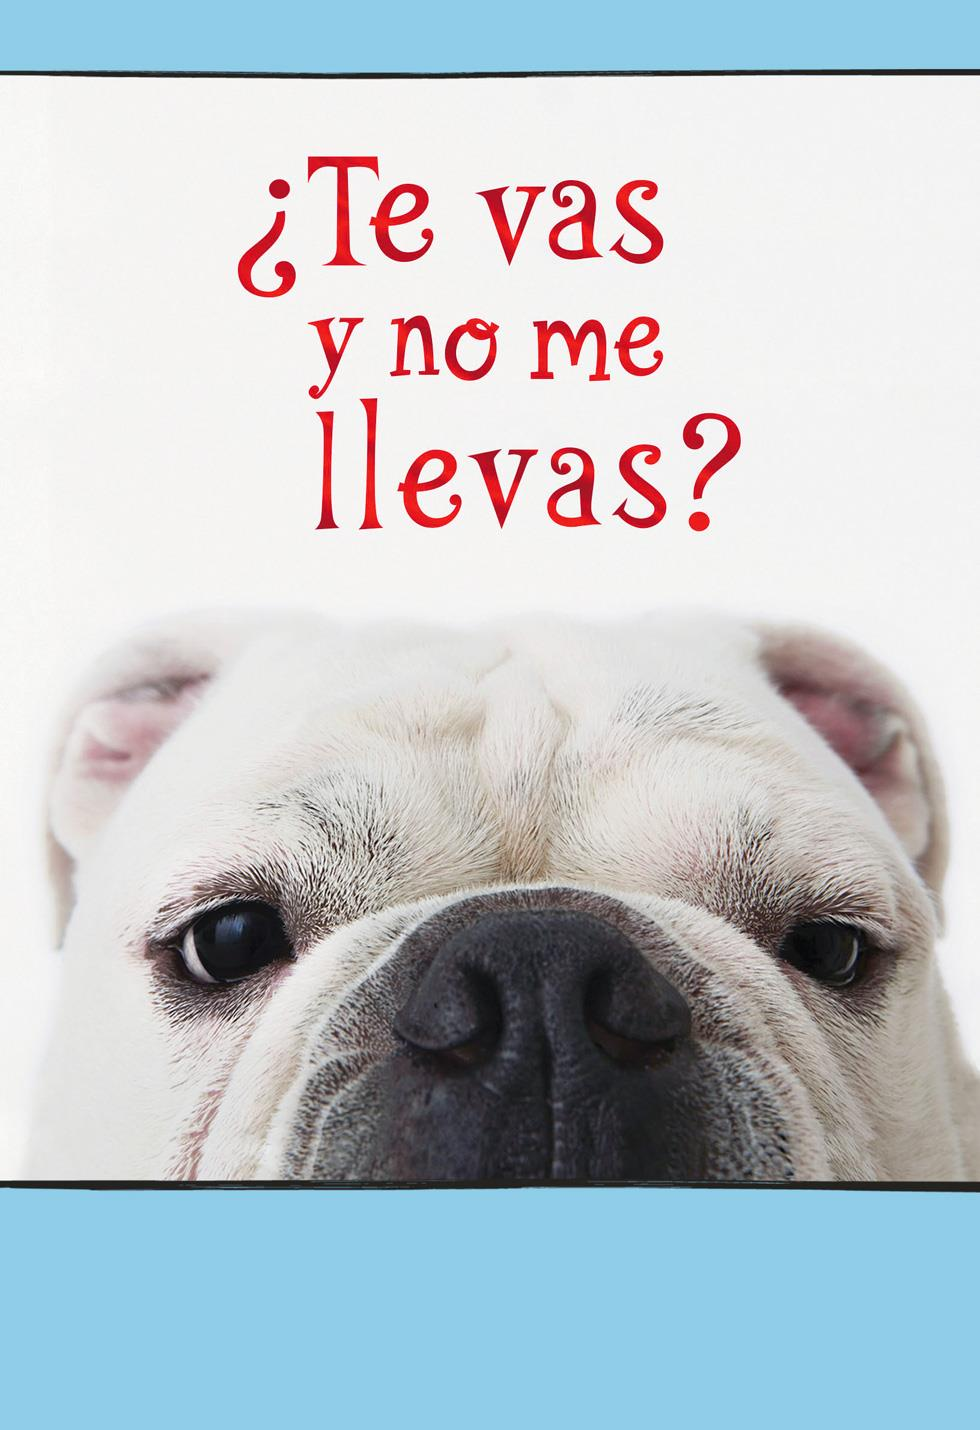 Leaving Without Me? Funny Spanish Language Goodbye Card